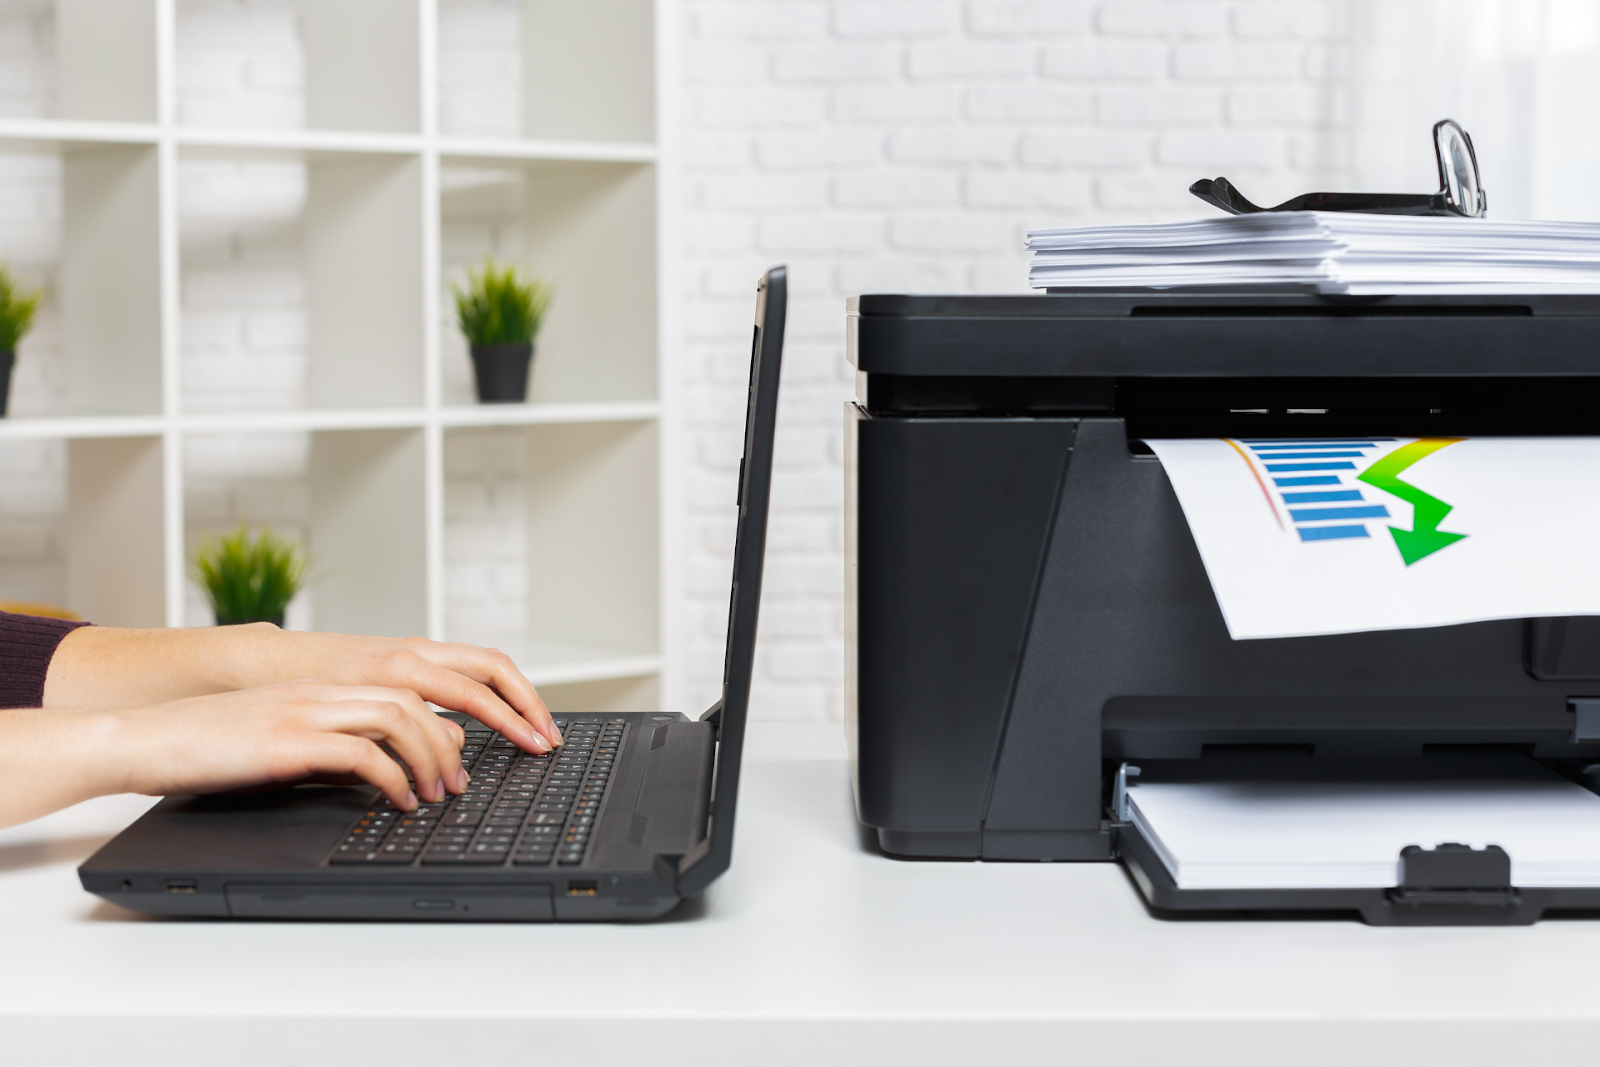 An individual uses a laptop to print from their home office